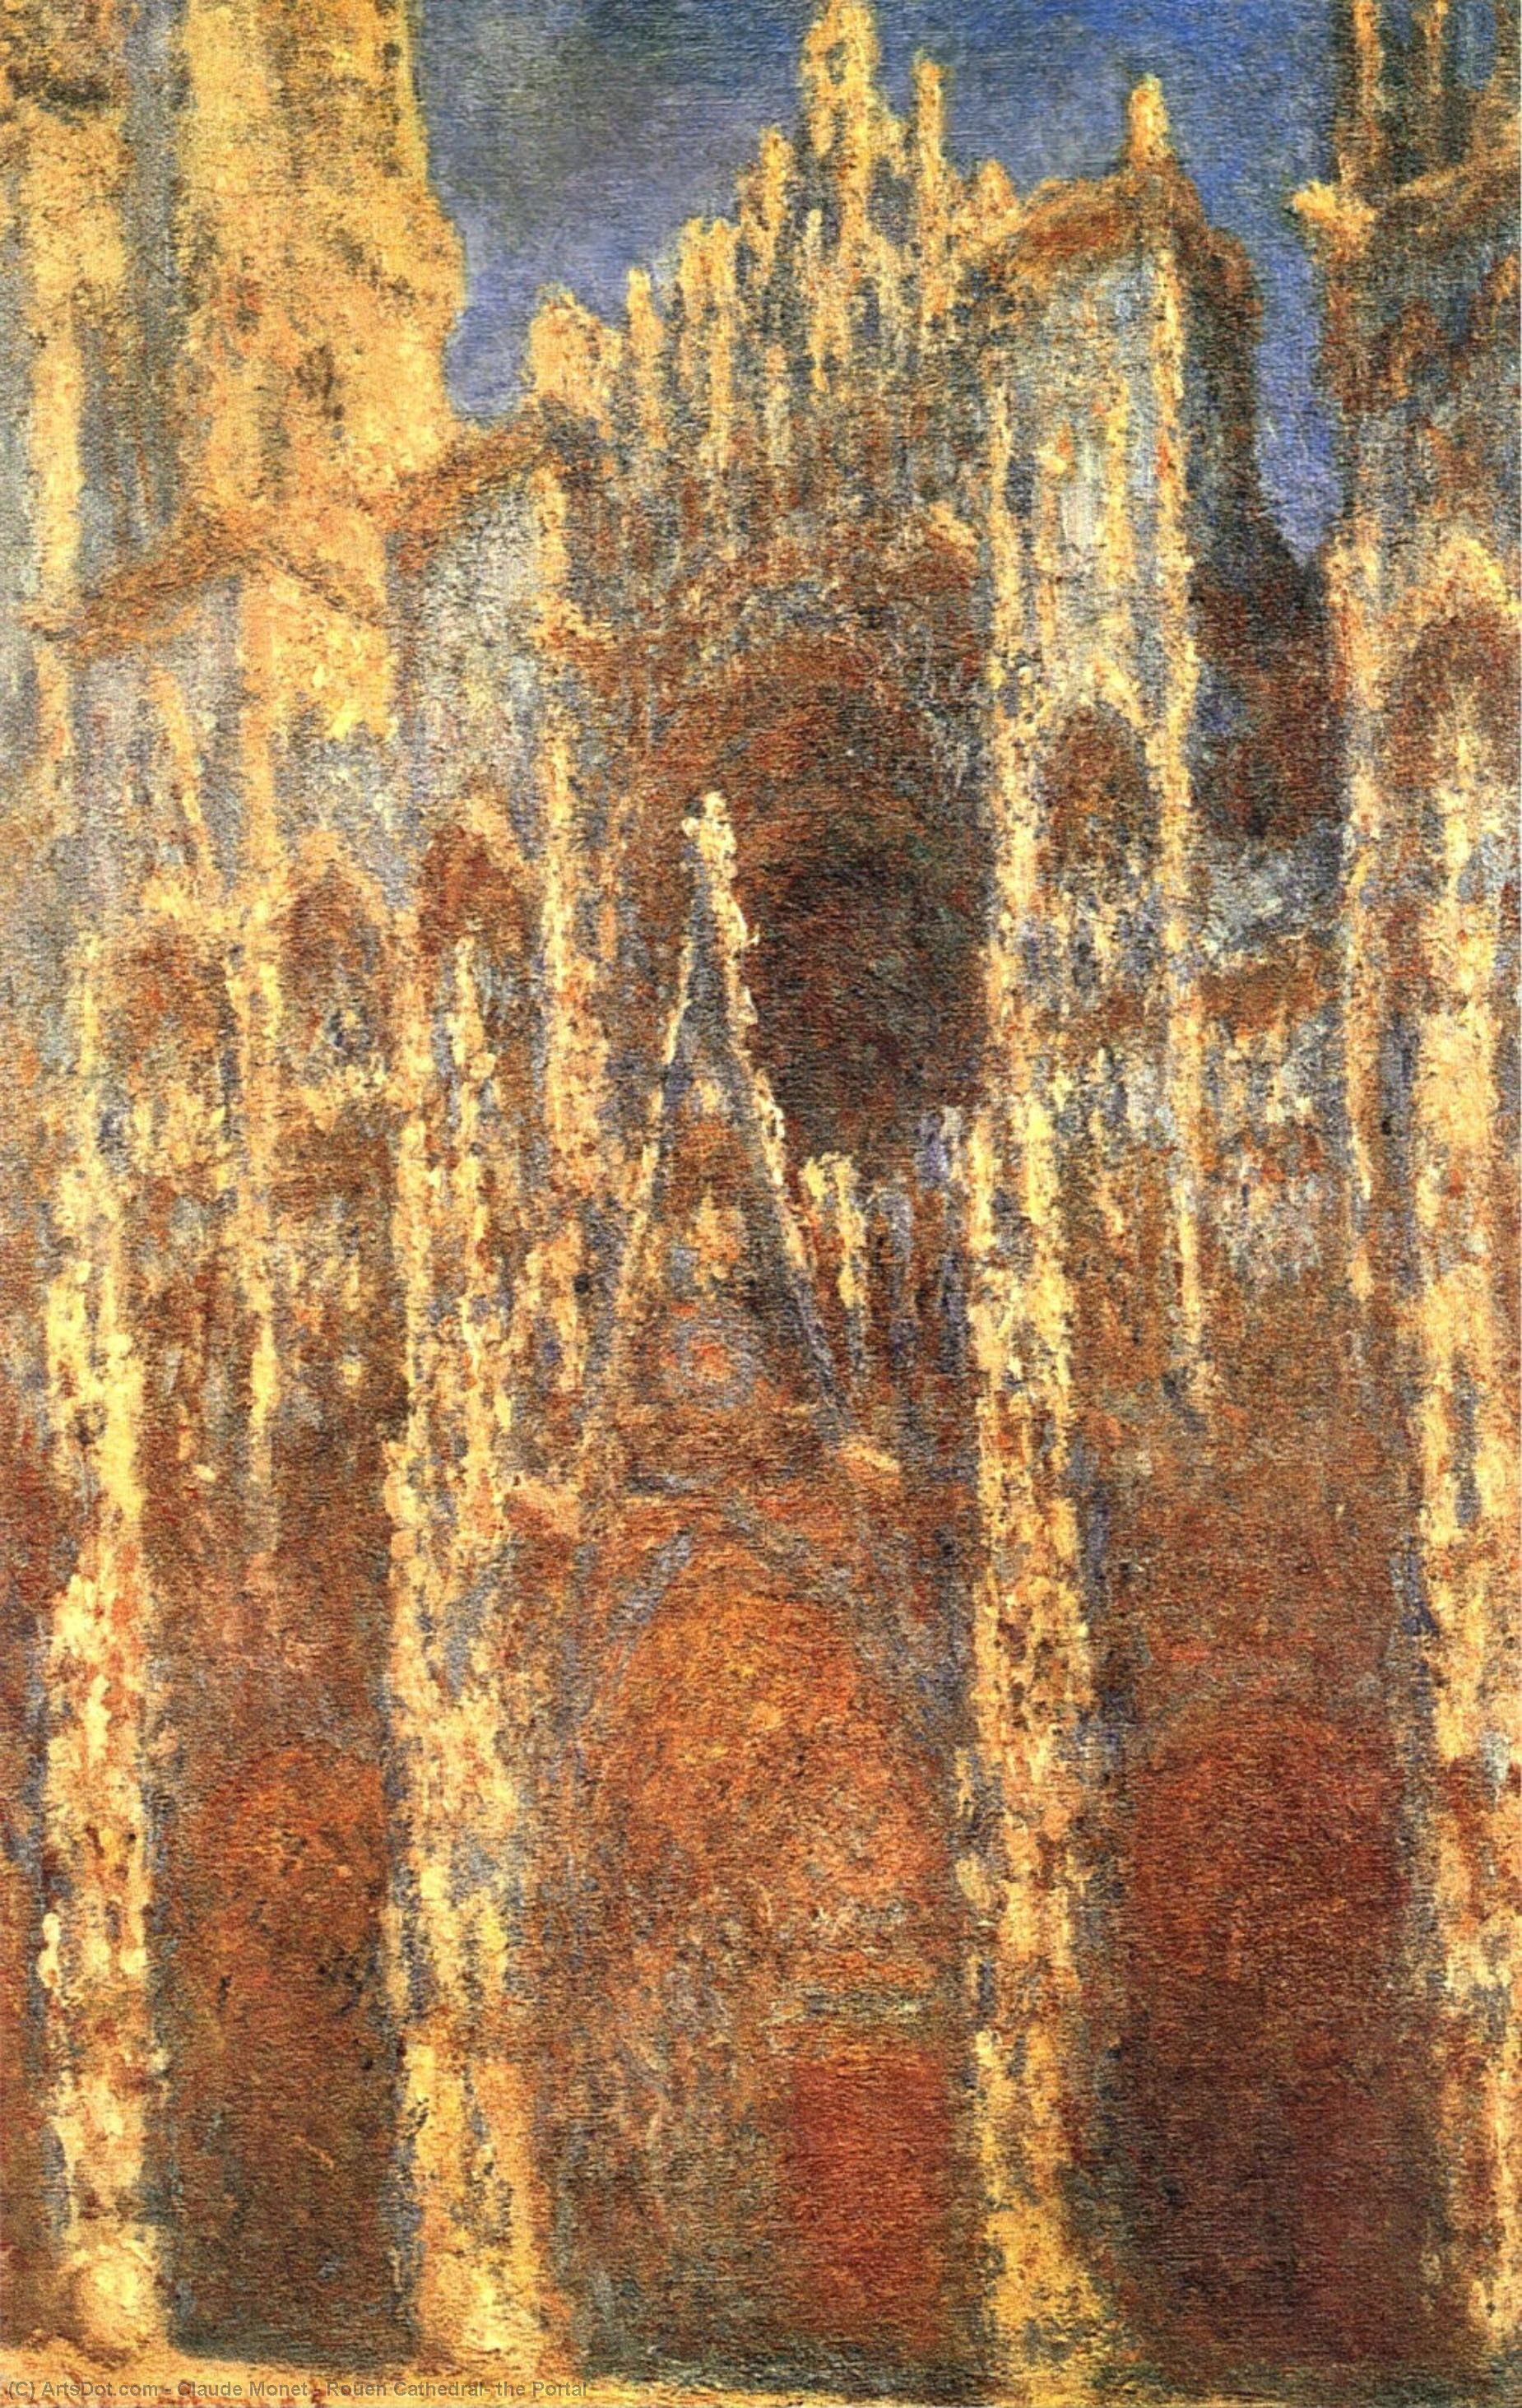 Buy Museum Art Reproductions | Rouen Cathedral, the Portal, 1894 by Claude Monet (1840-1926, France) | ArtsDot.com